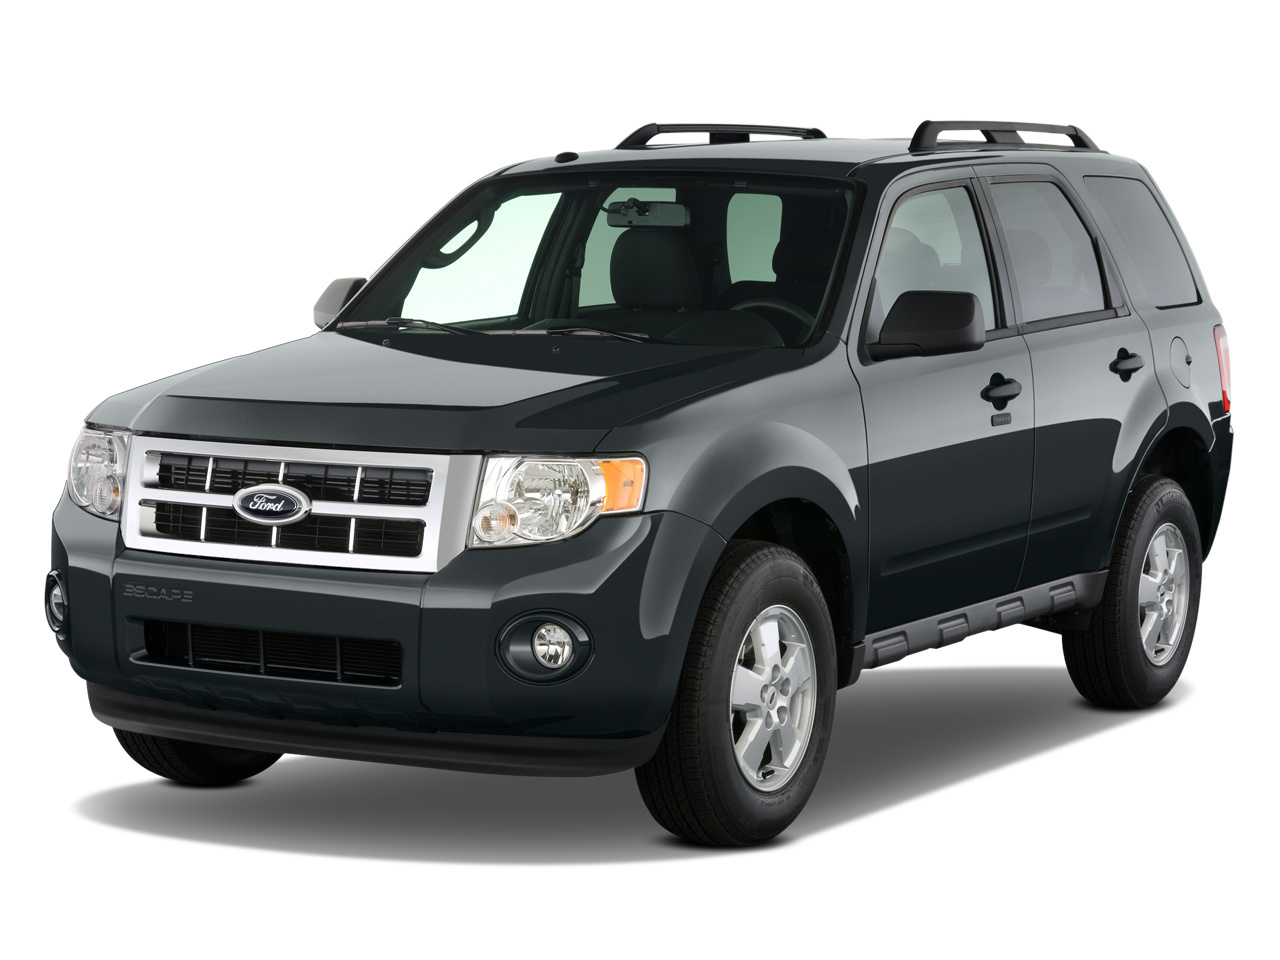 Picture of 2010 ford escape xlt exterior gallery_worthy